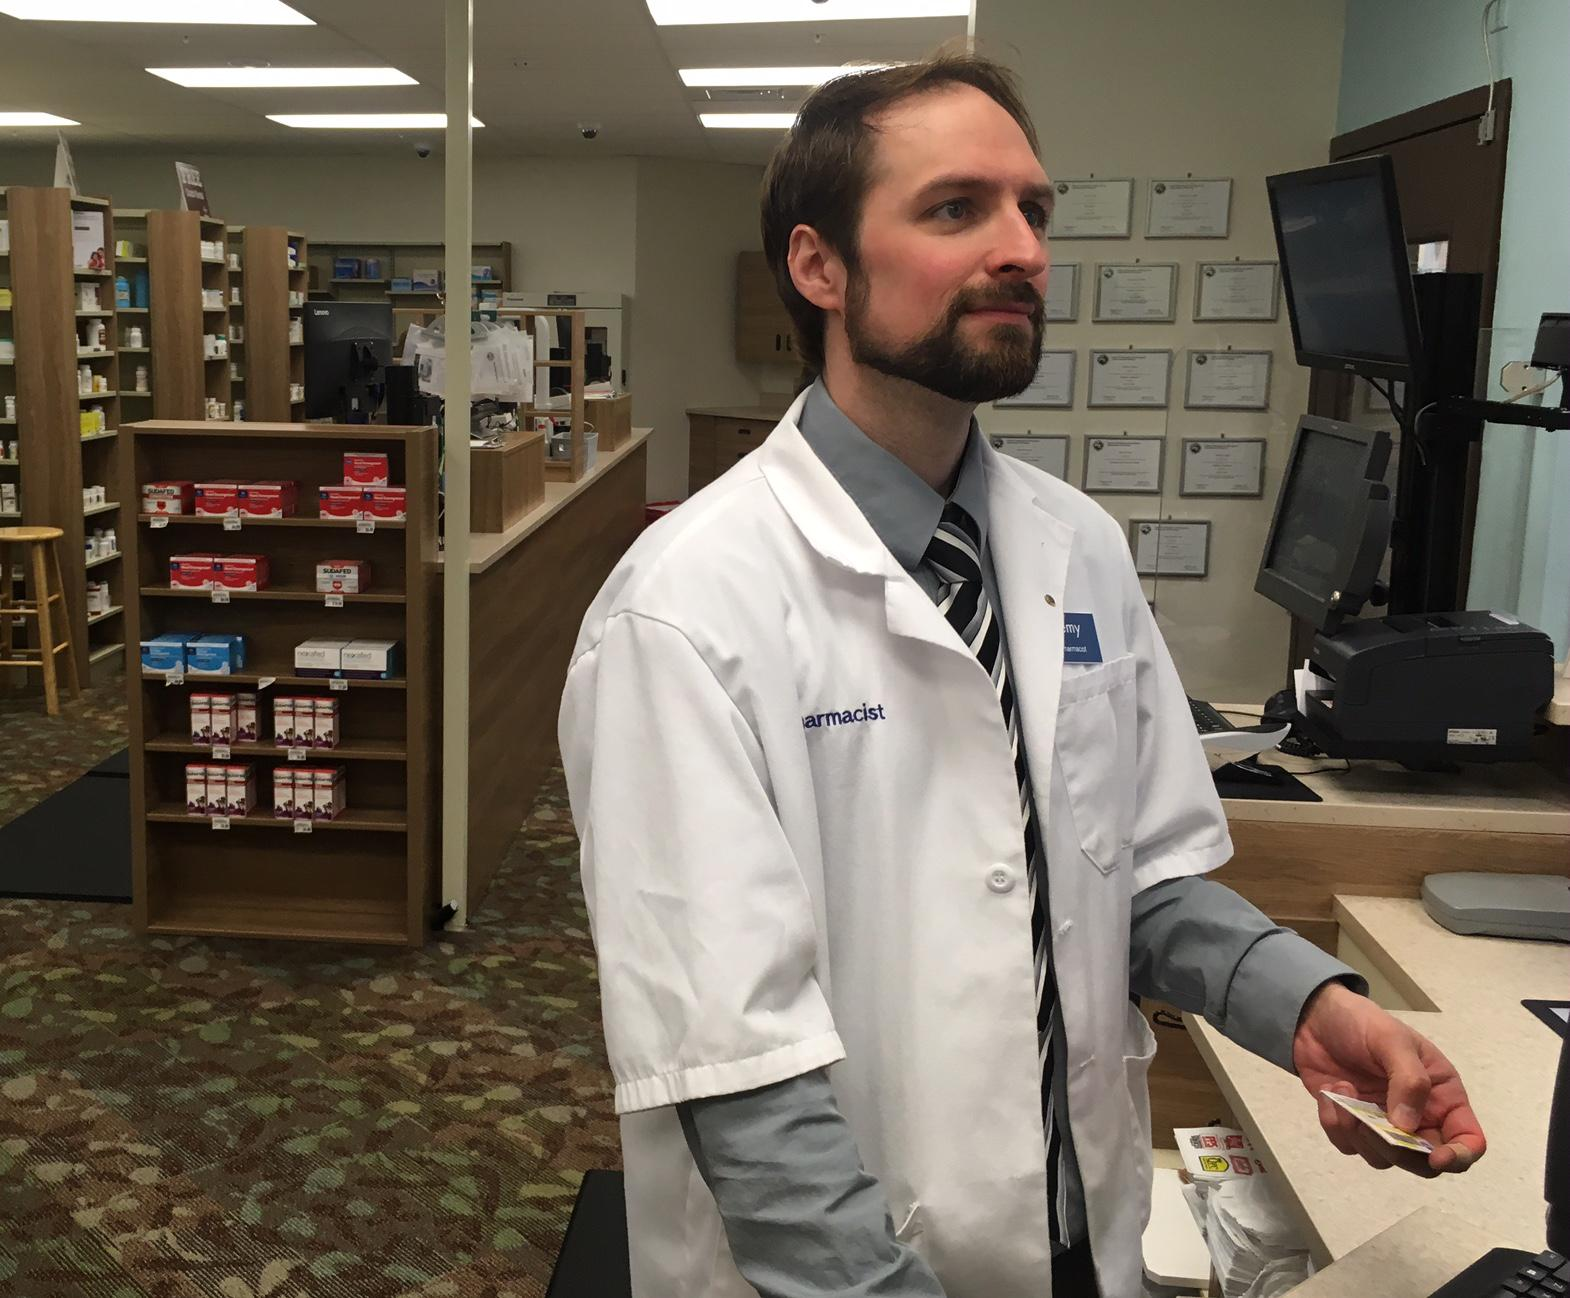 Convenience Or Compromise? More People Are Receiving Heathcare At  Pharmacies | Lakeshore Public Radio